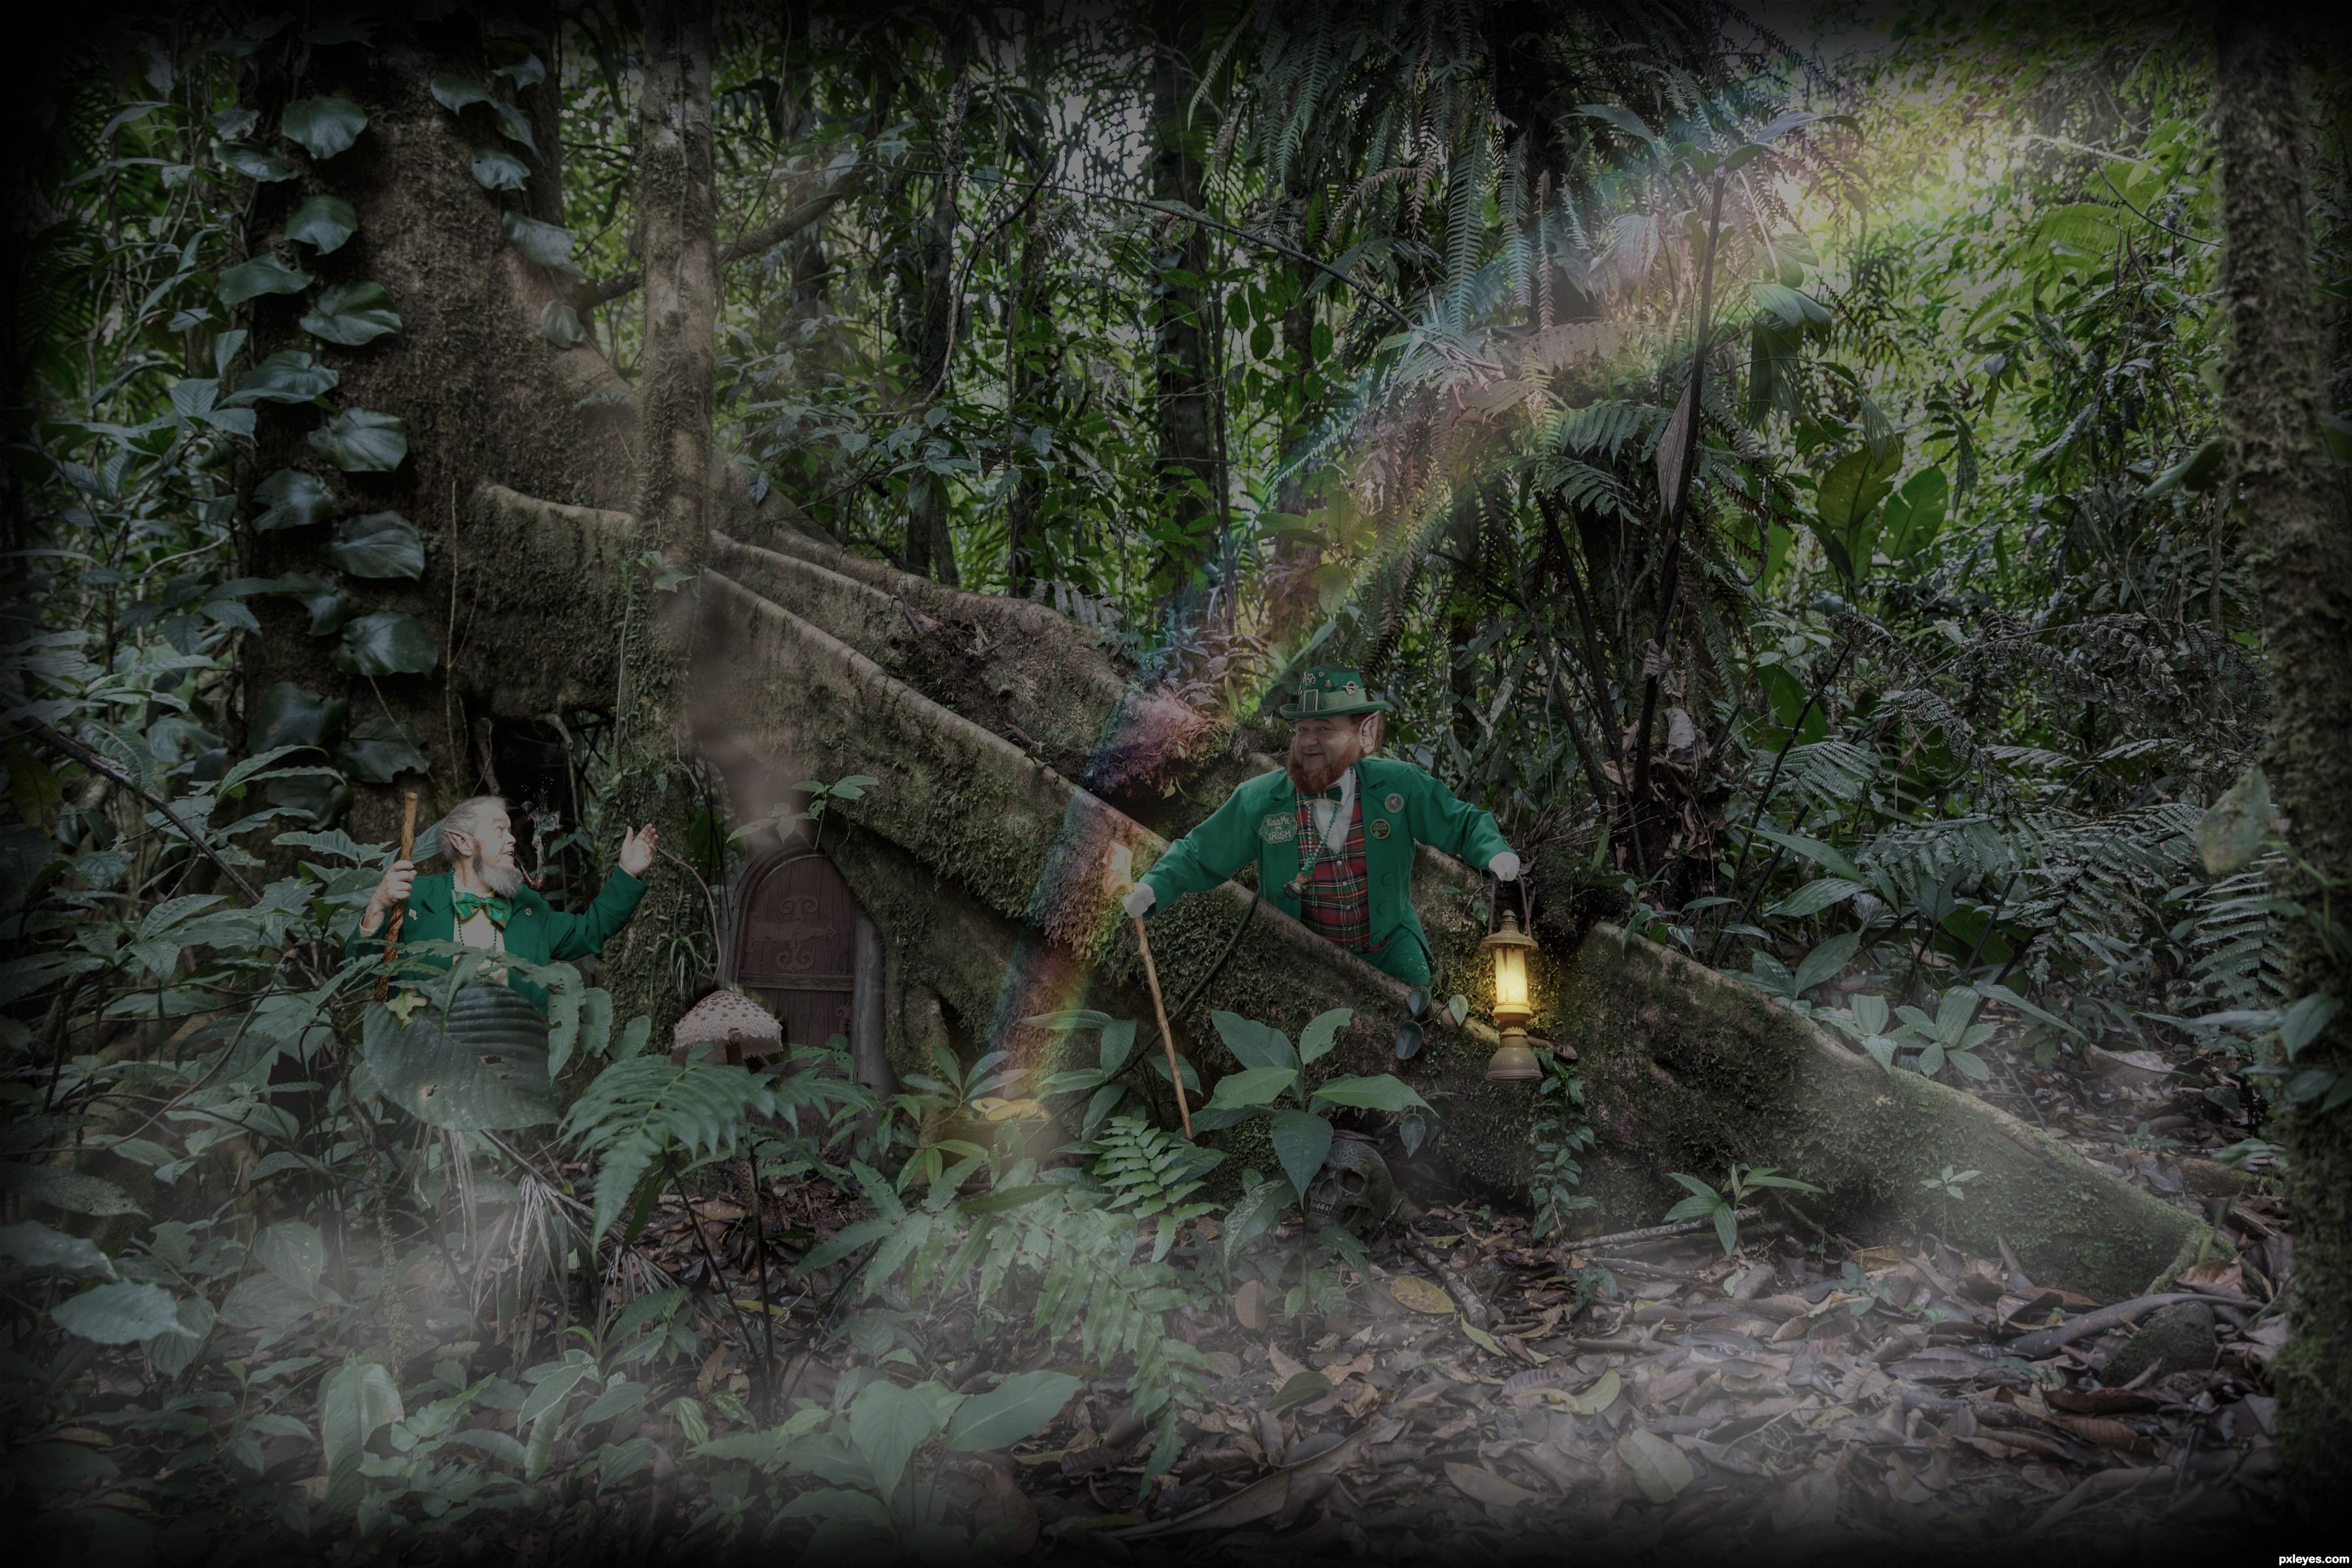 leprechaun u0027s lair picture by pearlie for ireland photoshop